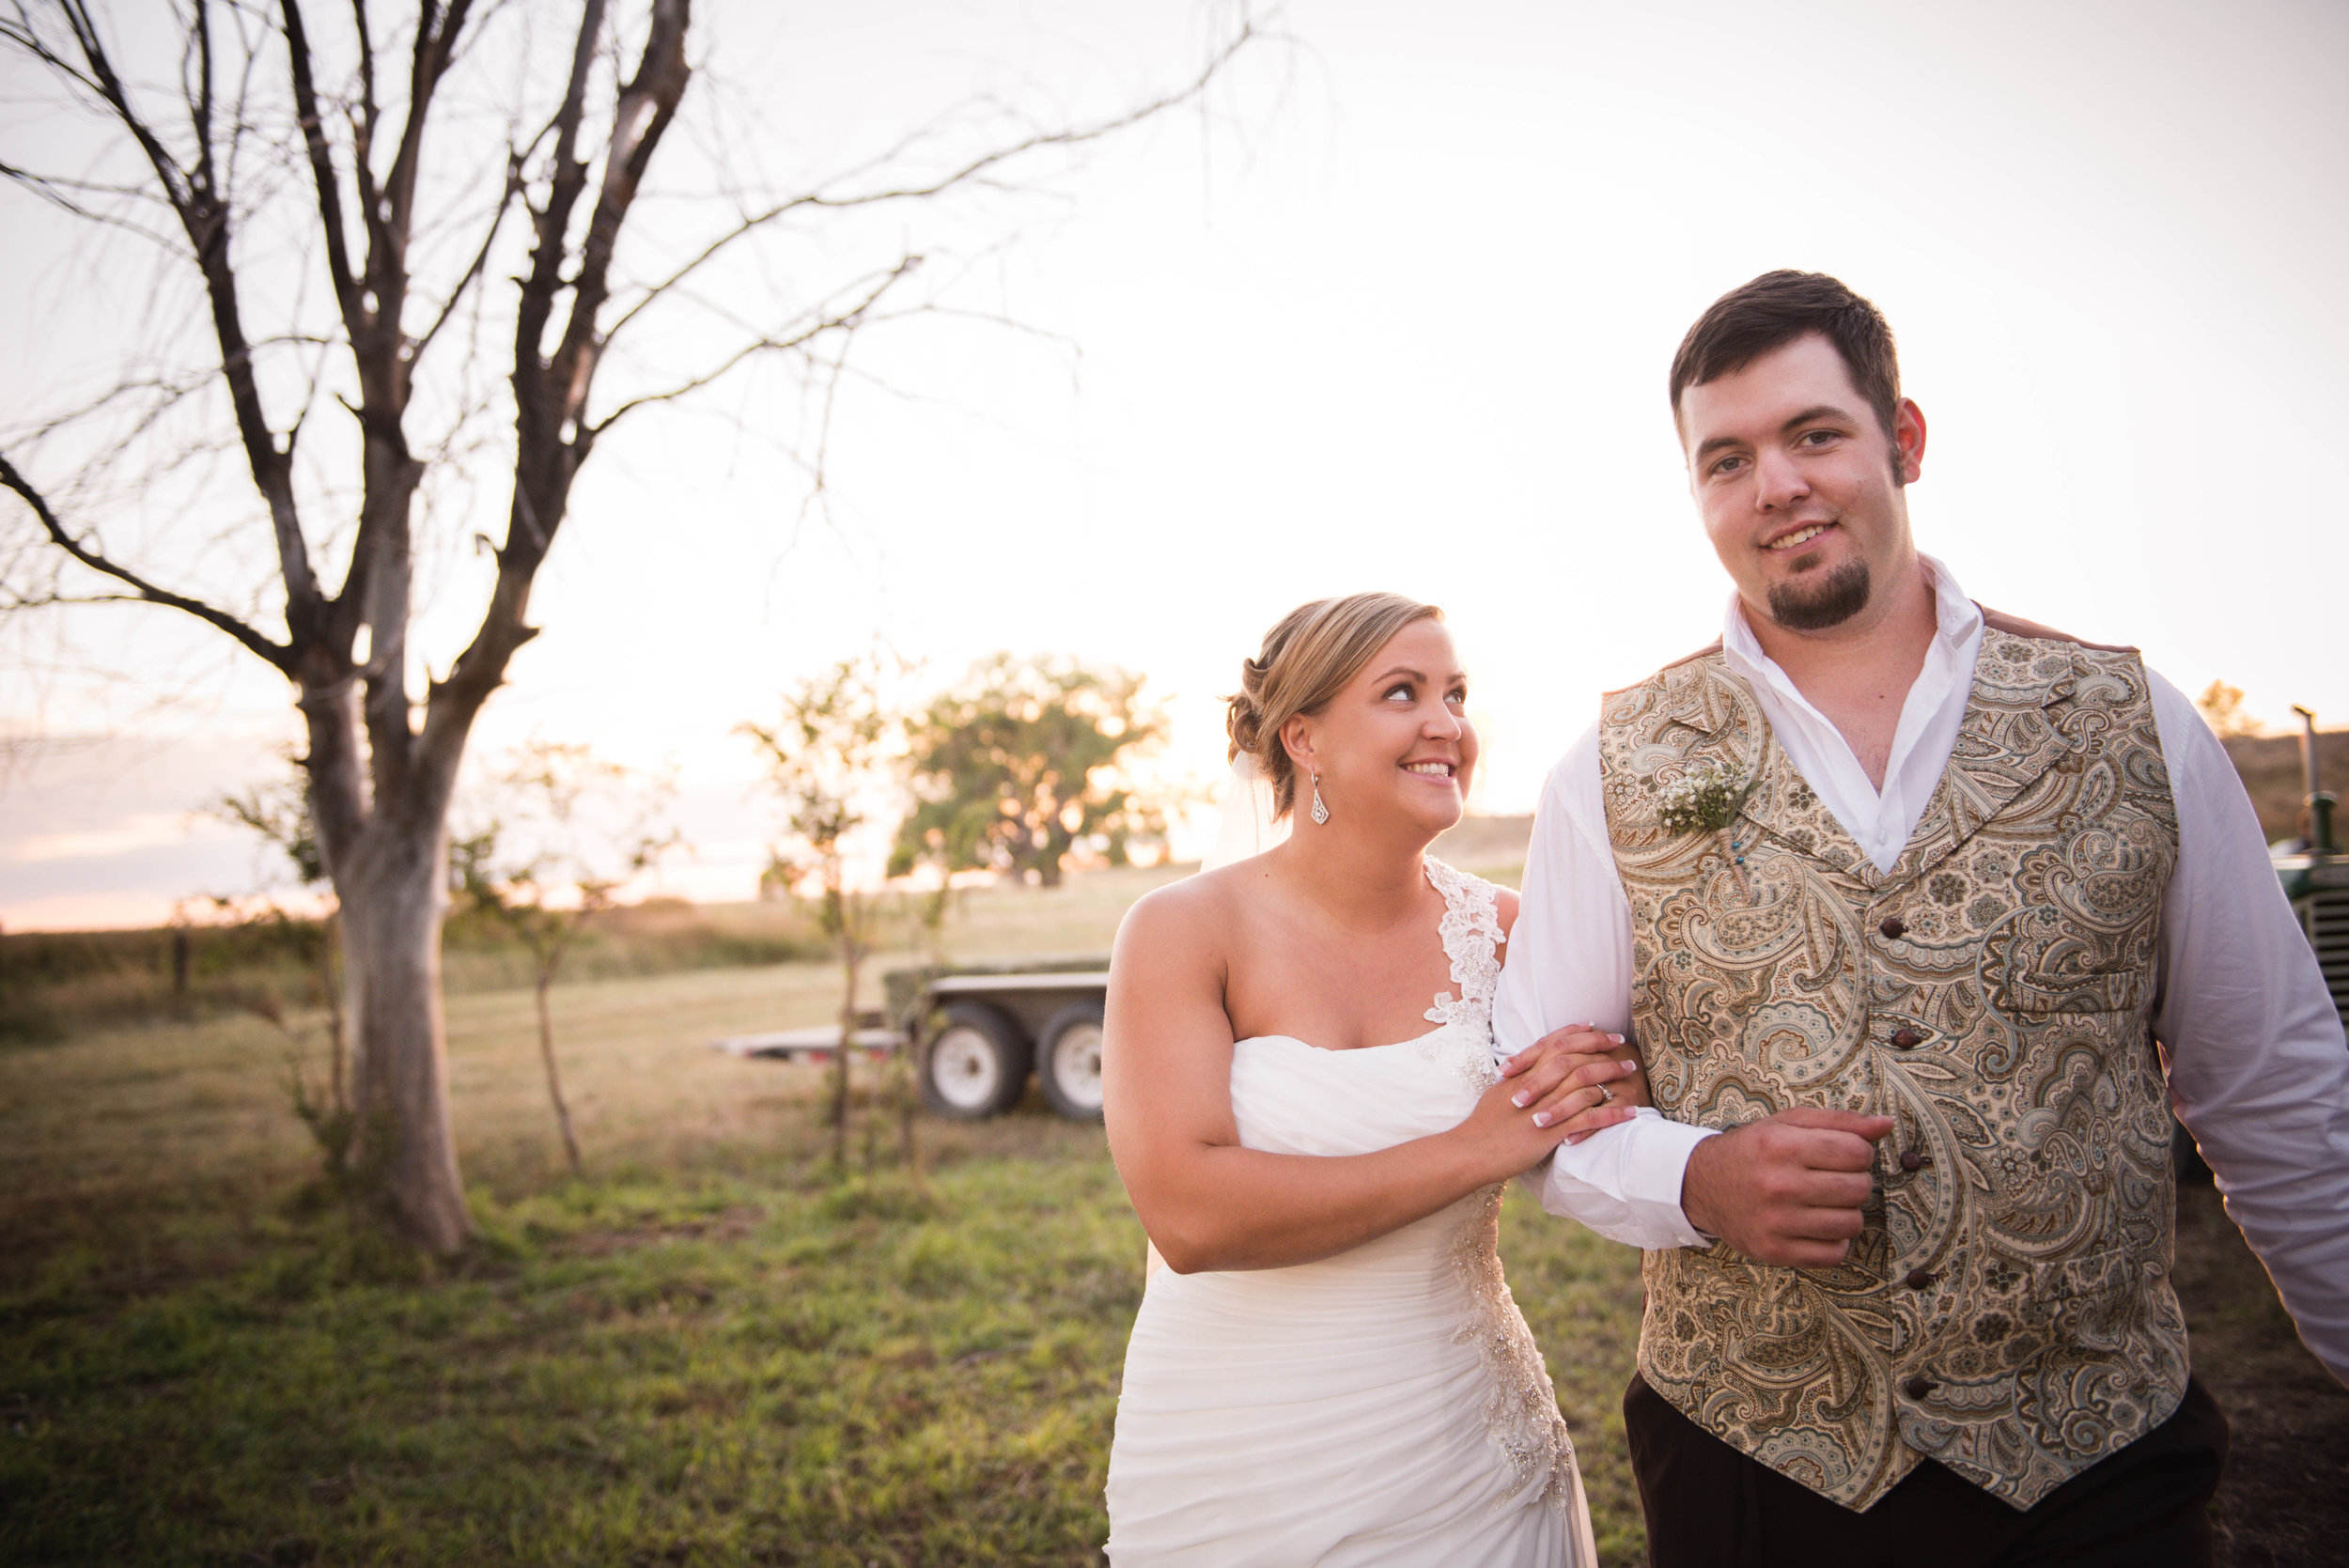 Wise Wedding  Crook, CO   Alanna Singer Photography  | Private Estate | Crook Community Center | My Flower Barn